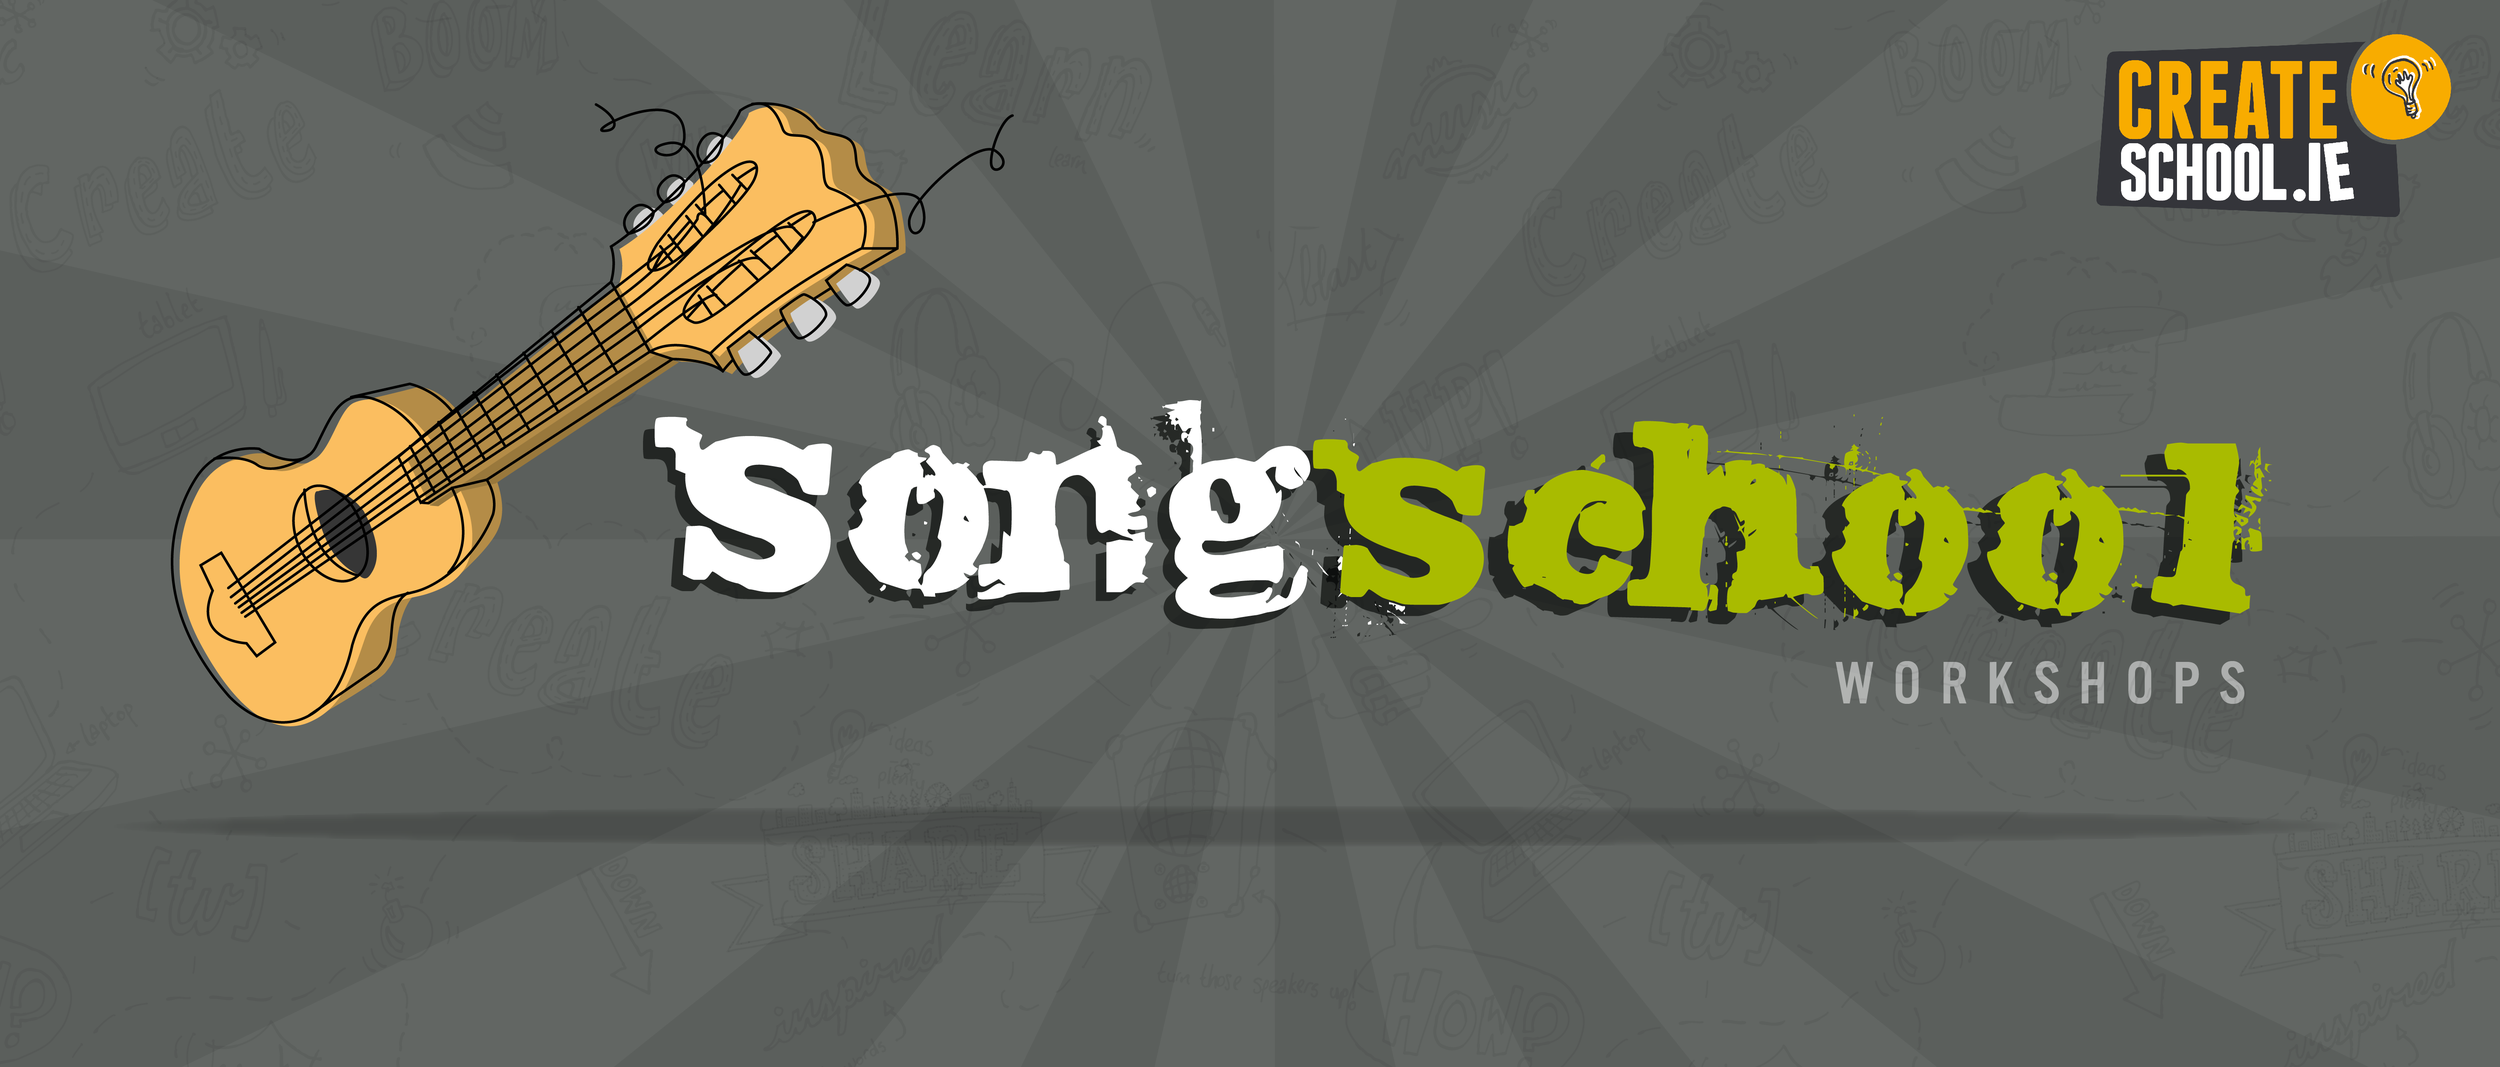 Songschool